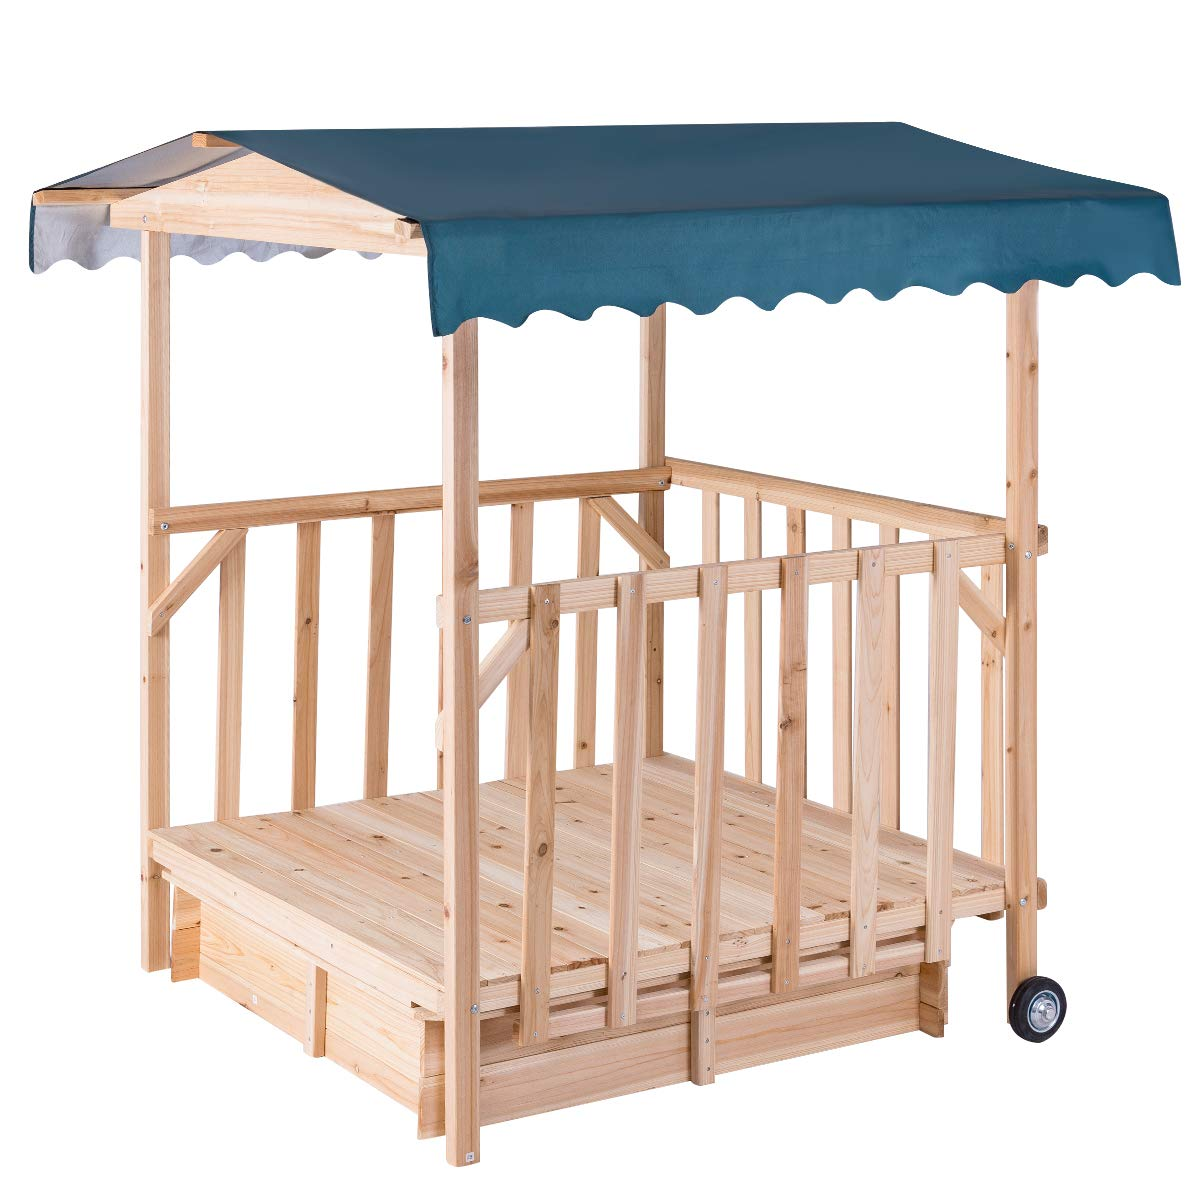 Costzon Kids Retractable Playhouse w/ Sandbox Canopy, Non-Woven Fabric Cloth, Wood Frame Play Area, Two Wheels, Children Outdoor Beach Cabana Sandbox for Outdoor, Lawn, Courtyard (52-Inch, Aquamarine) by Costzon (Image #7)